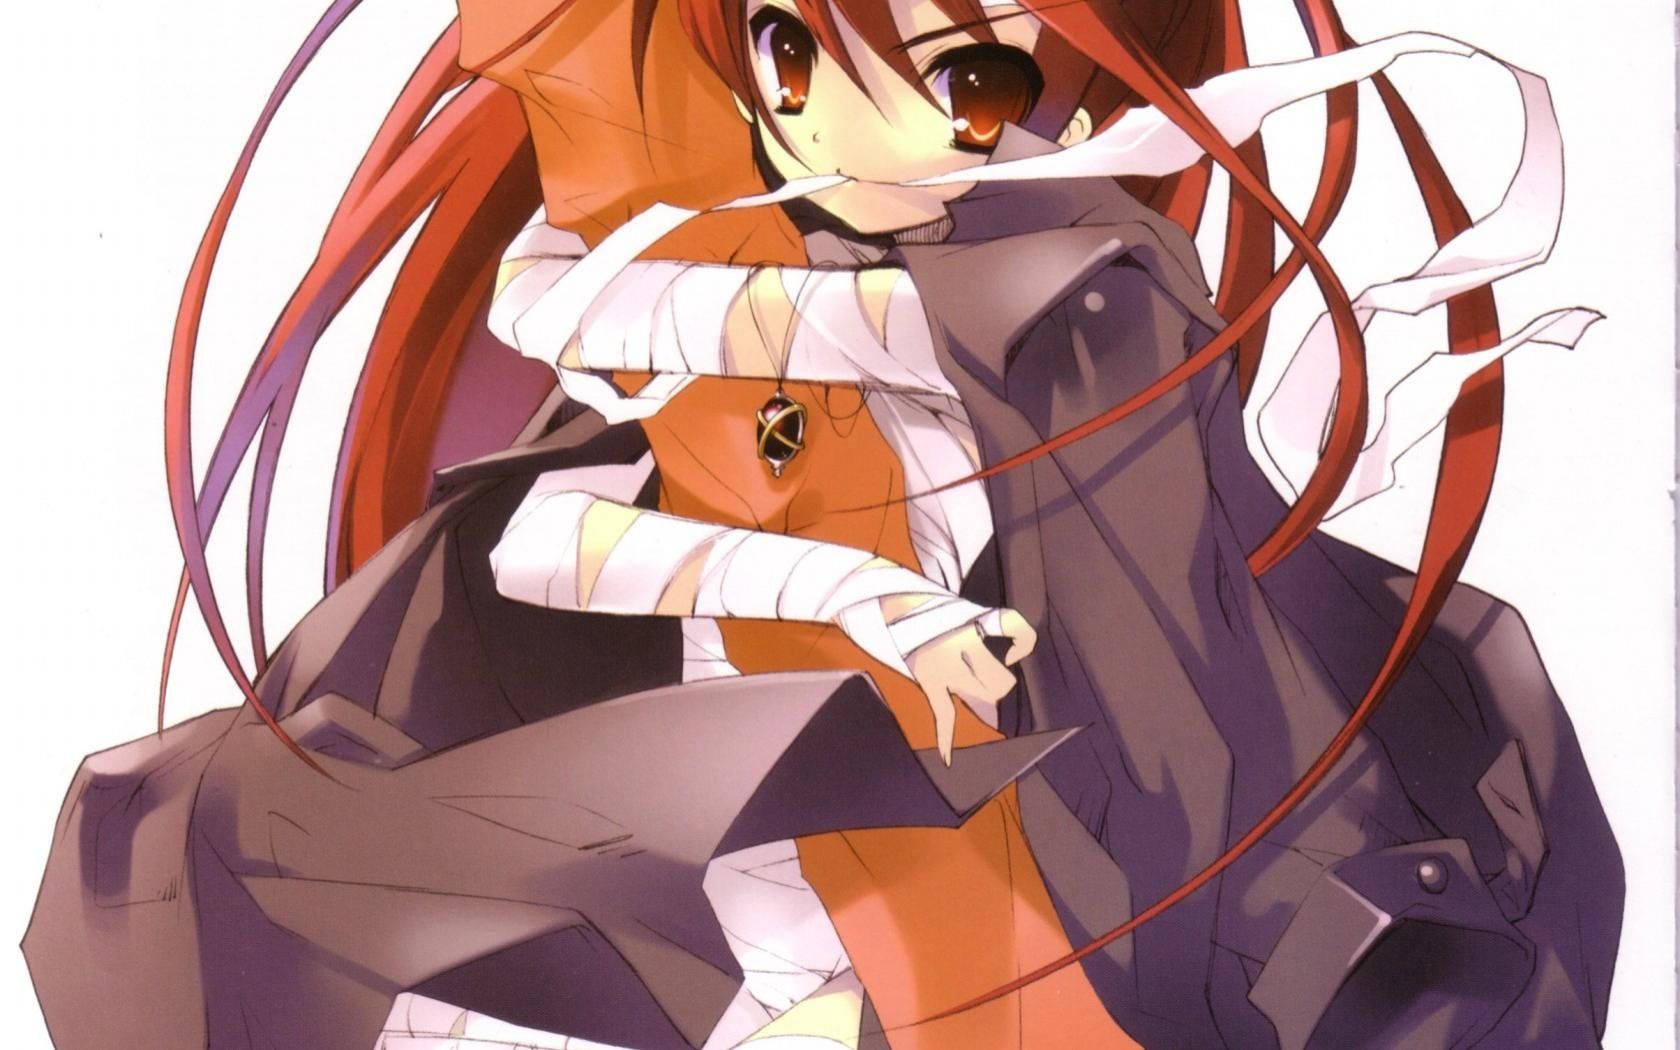 Download hd 1680x1050 Shakugan No Shana PC background ID:284655 for free